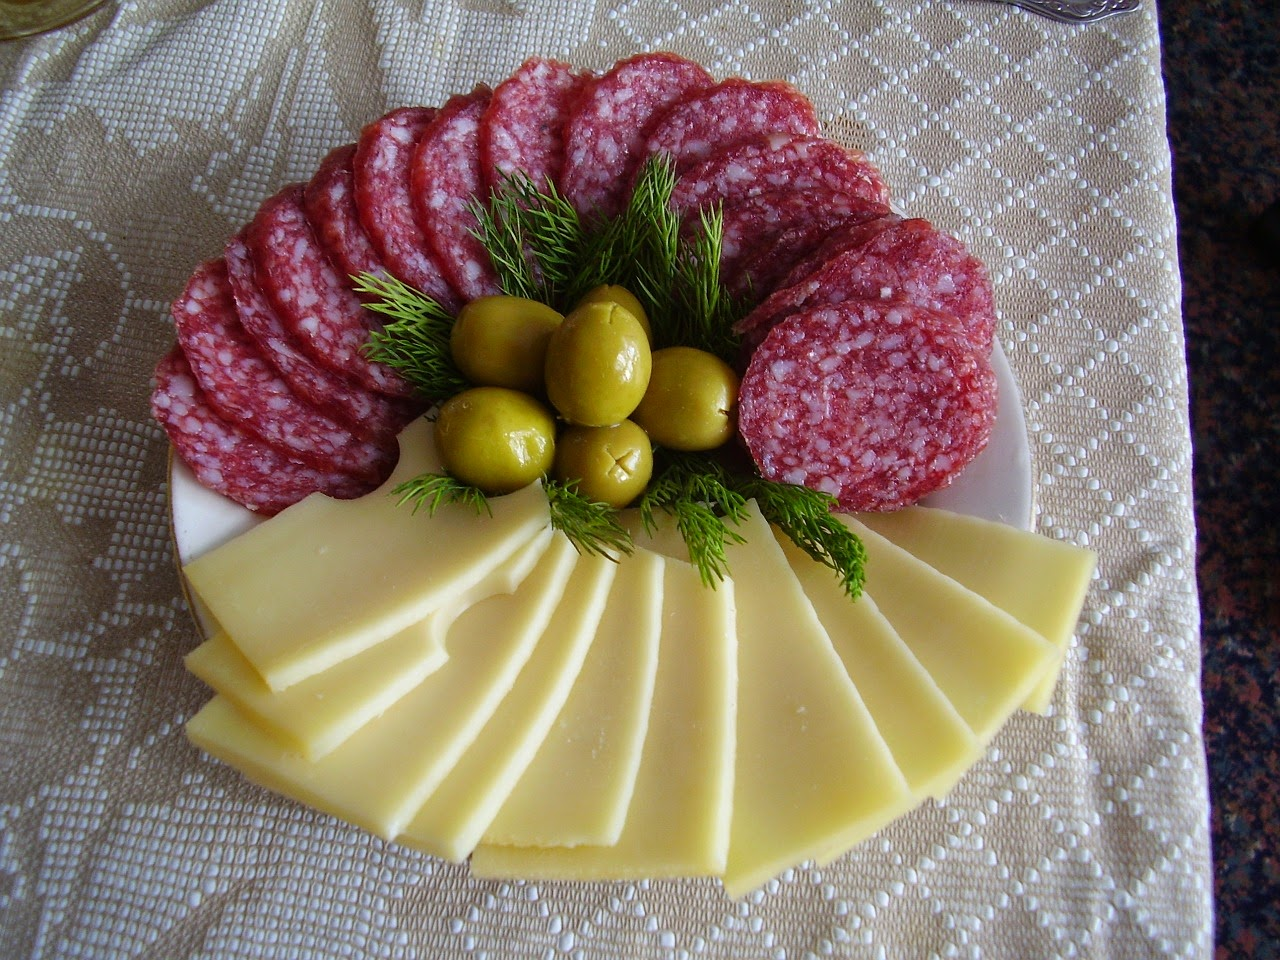 Tray of Salame, Cheese, and Green Olives